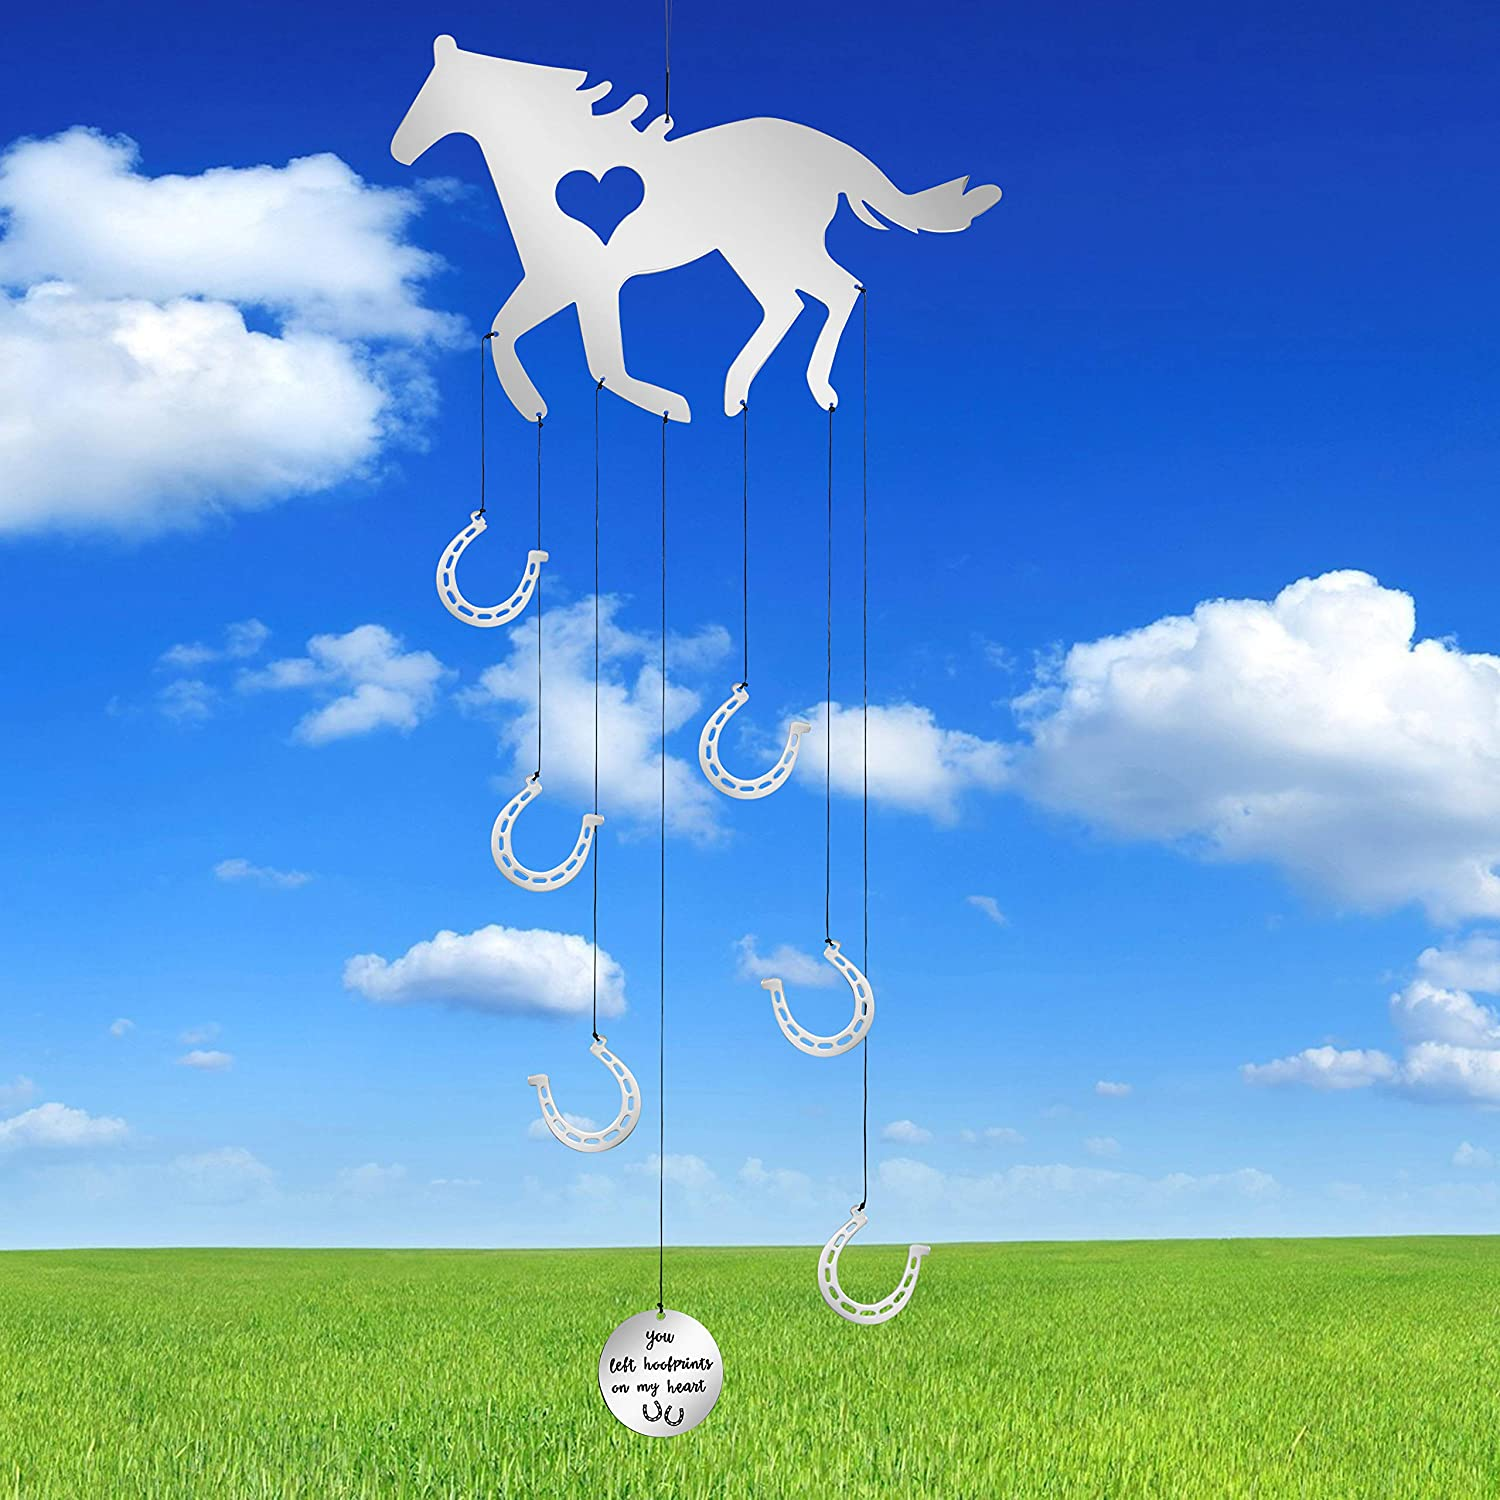 MEMGIFT Horse Memorial Wind Chimes Outside Home Garden for Outdoor Hanging Yard Porch Patio Handmade Trendy for Horse Lovers Daughter Sister Women Best Friend You Left hoofprints on My Heart